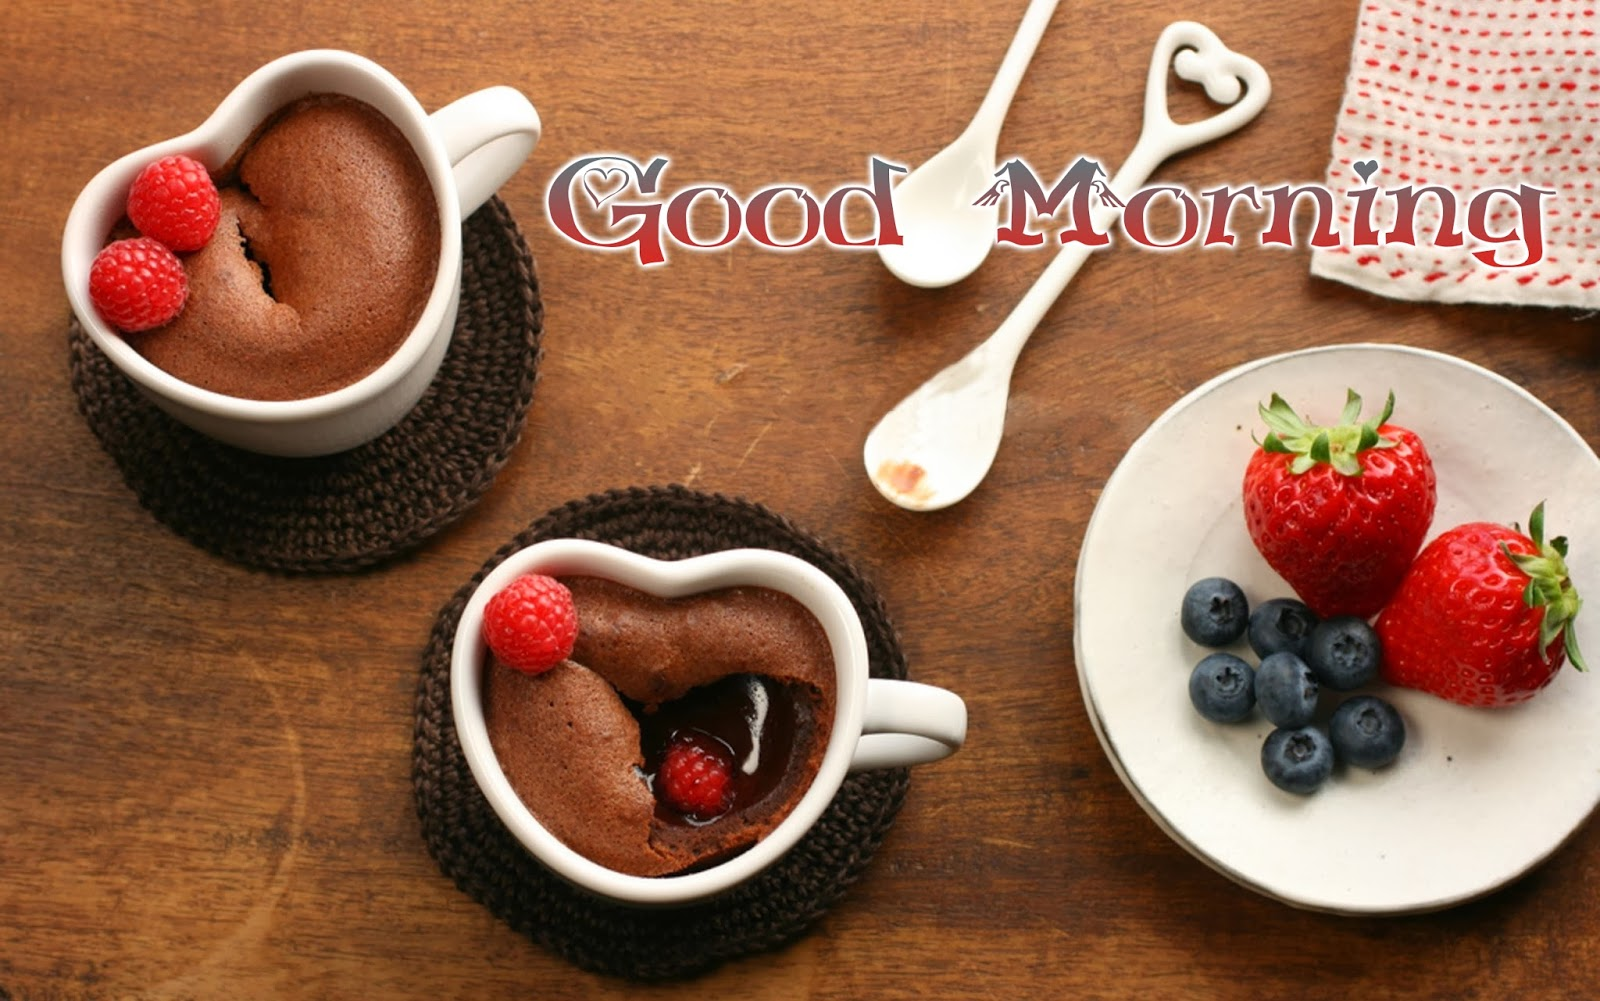 Good-Morning-Wishes-Wallpaper-With-Strawberry-Image-HD-Wide